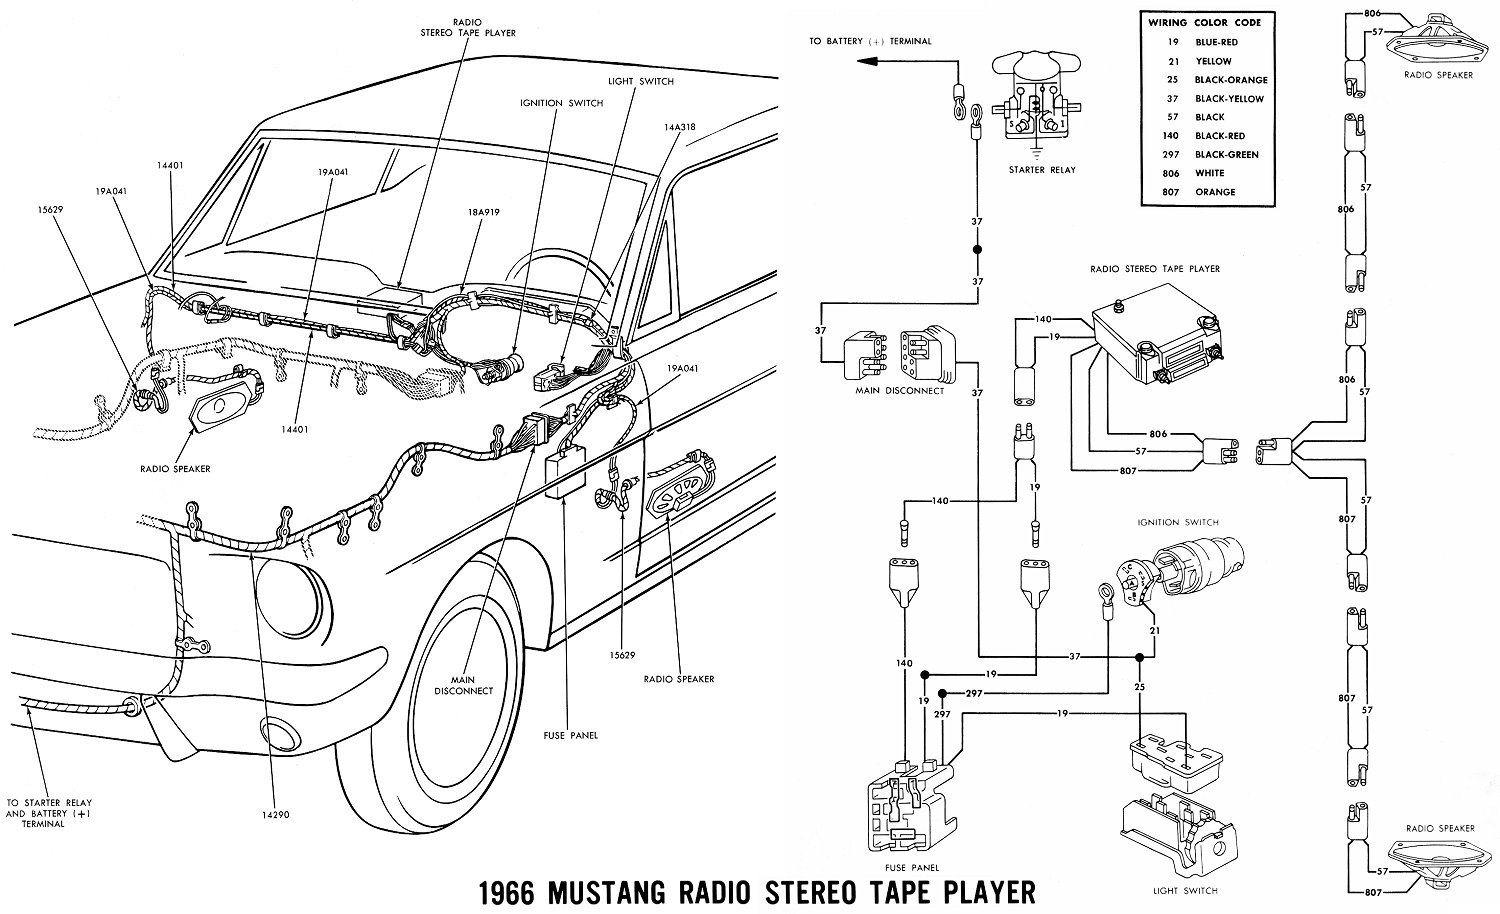 1966 mustang wiring diagrams - average joe restoration 66 mustang wiring diagram courtesy